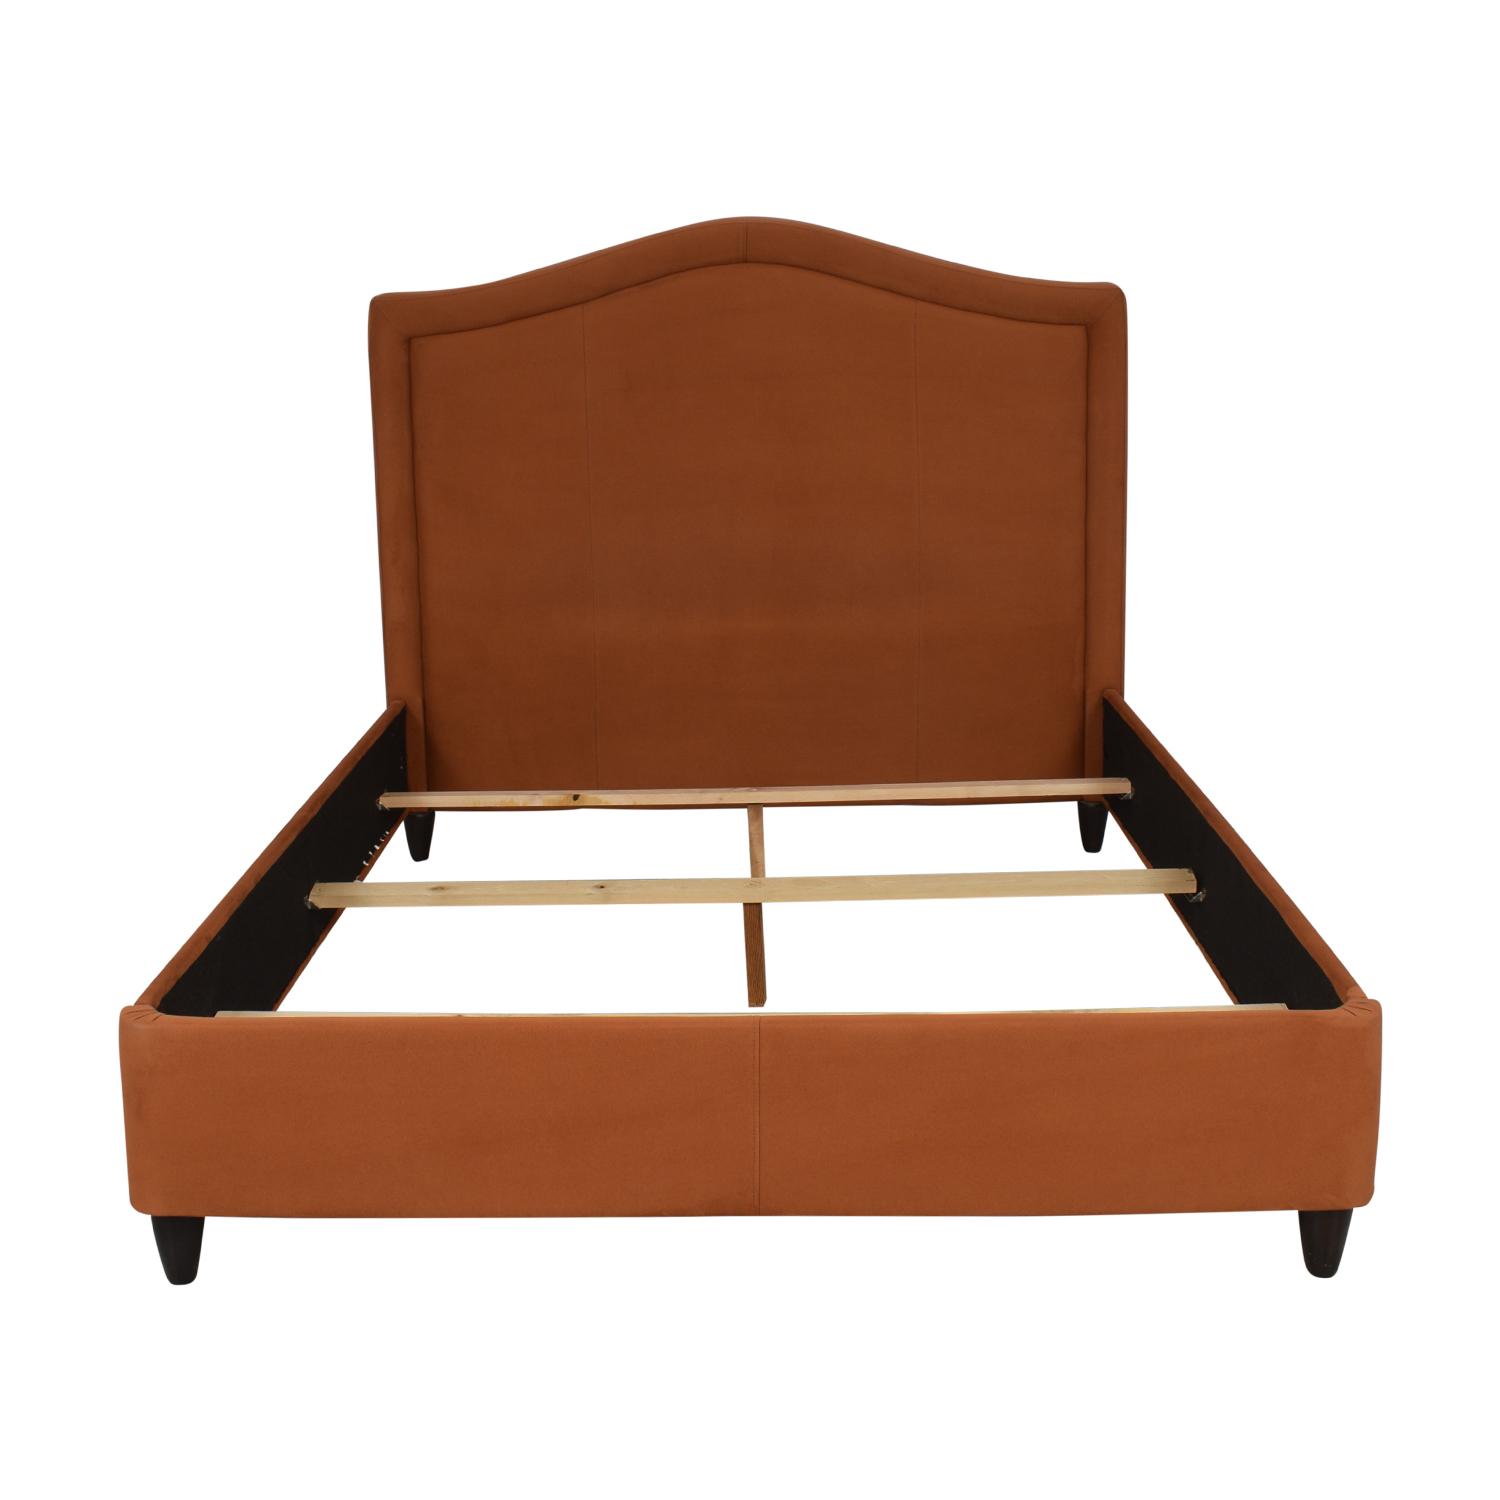 shop Shermag Shermag Queen Bed online